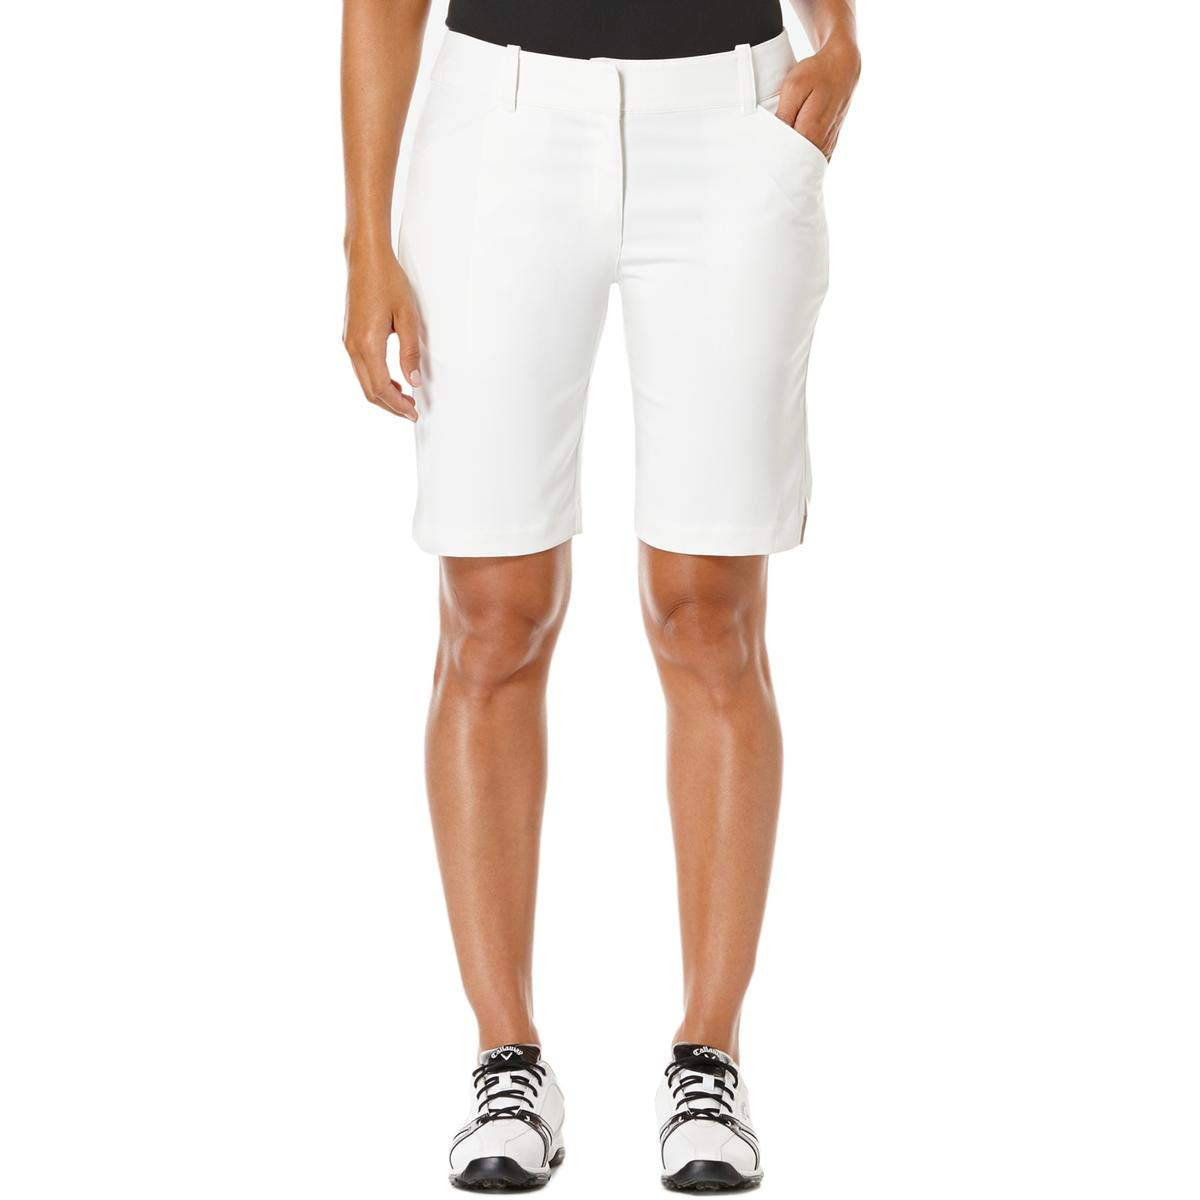 Callaway Women's Golf Performance 19'' Woven Shorts, Bright White, Size 14 by Callaway